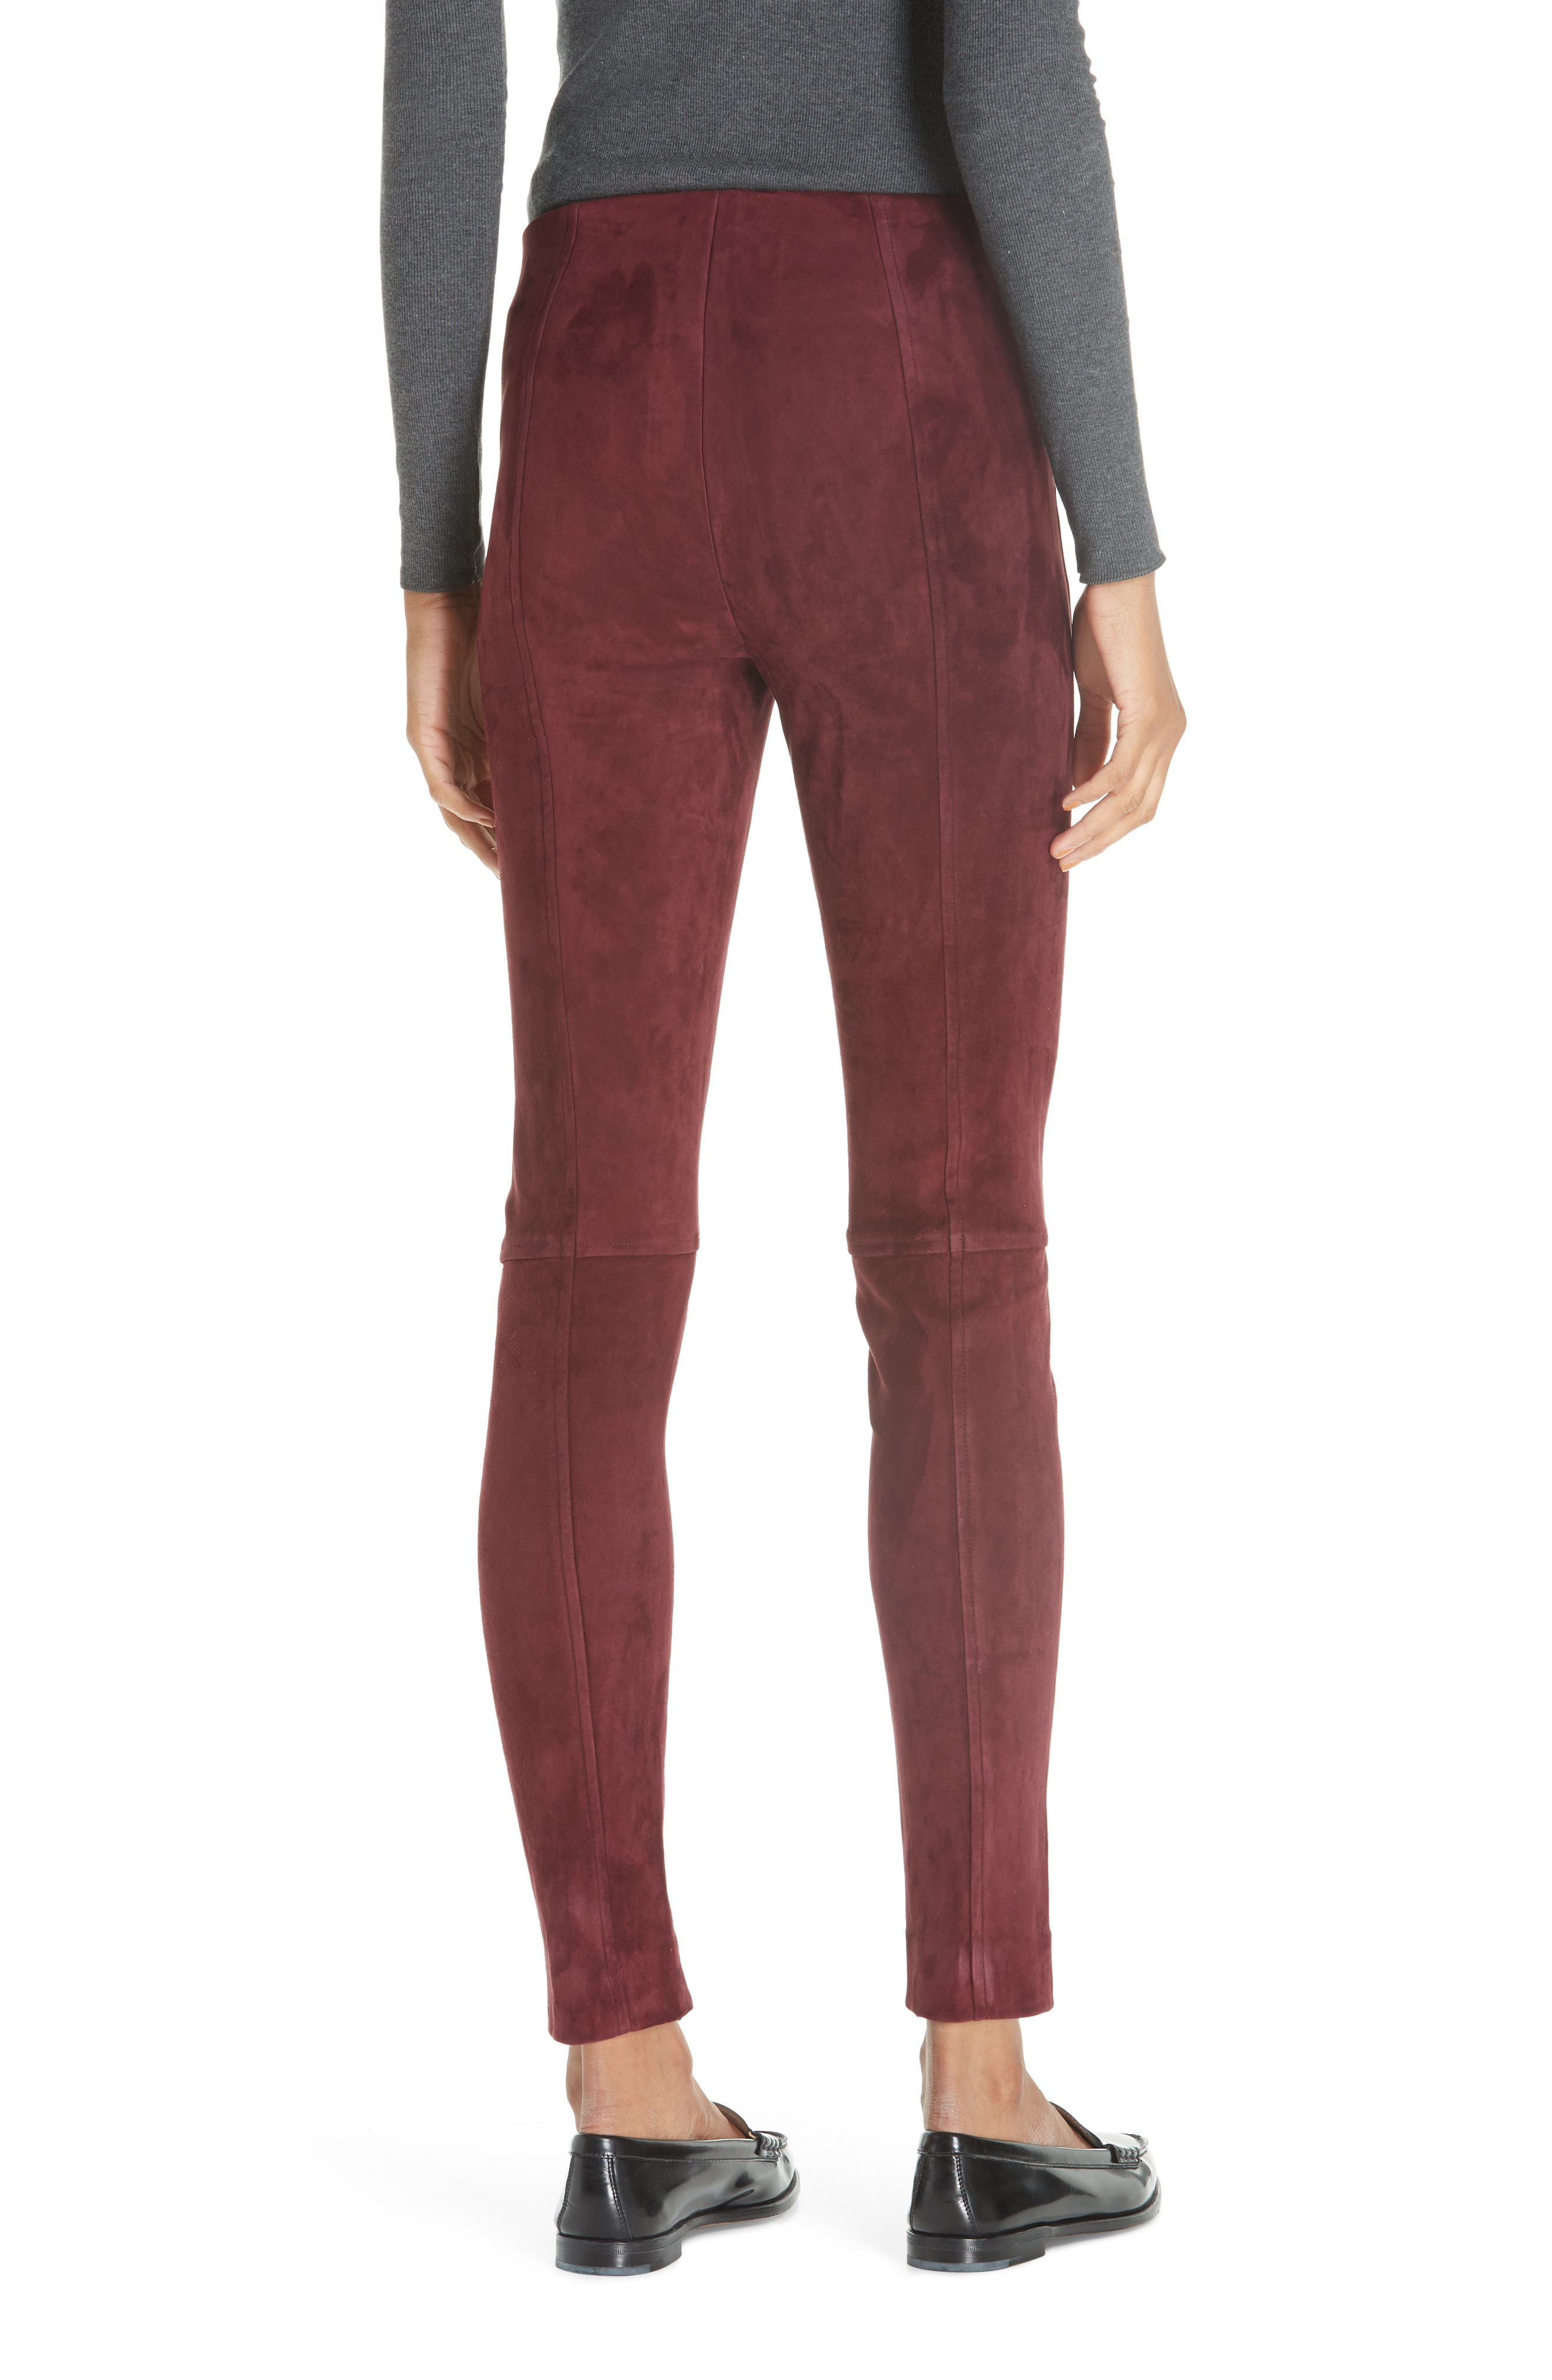 POLO RALPH LAUREN,                             Pull-On Skinny Suede Pants,                             Alternate thumbnail 2, color,                             930